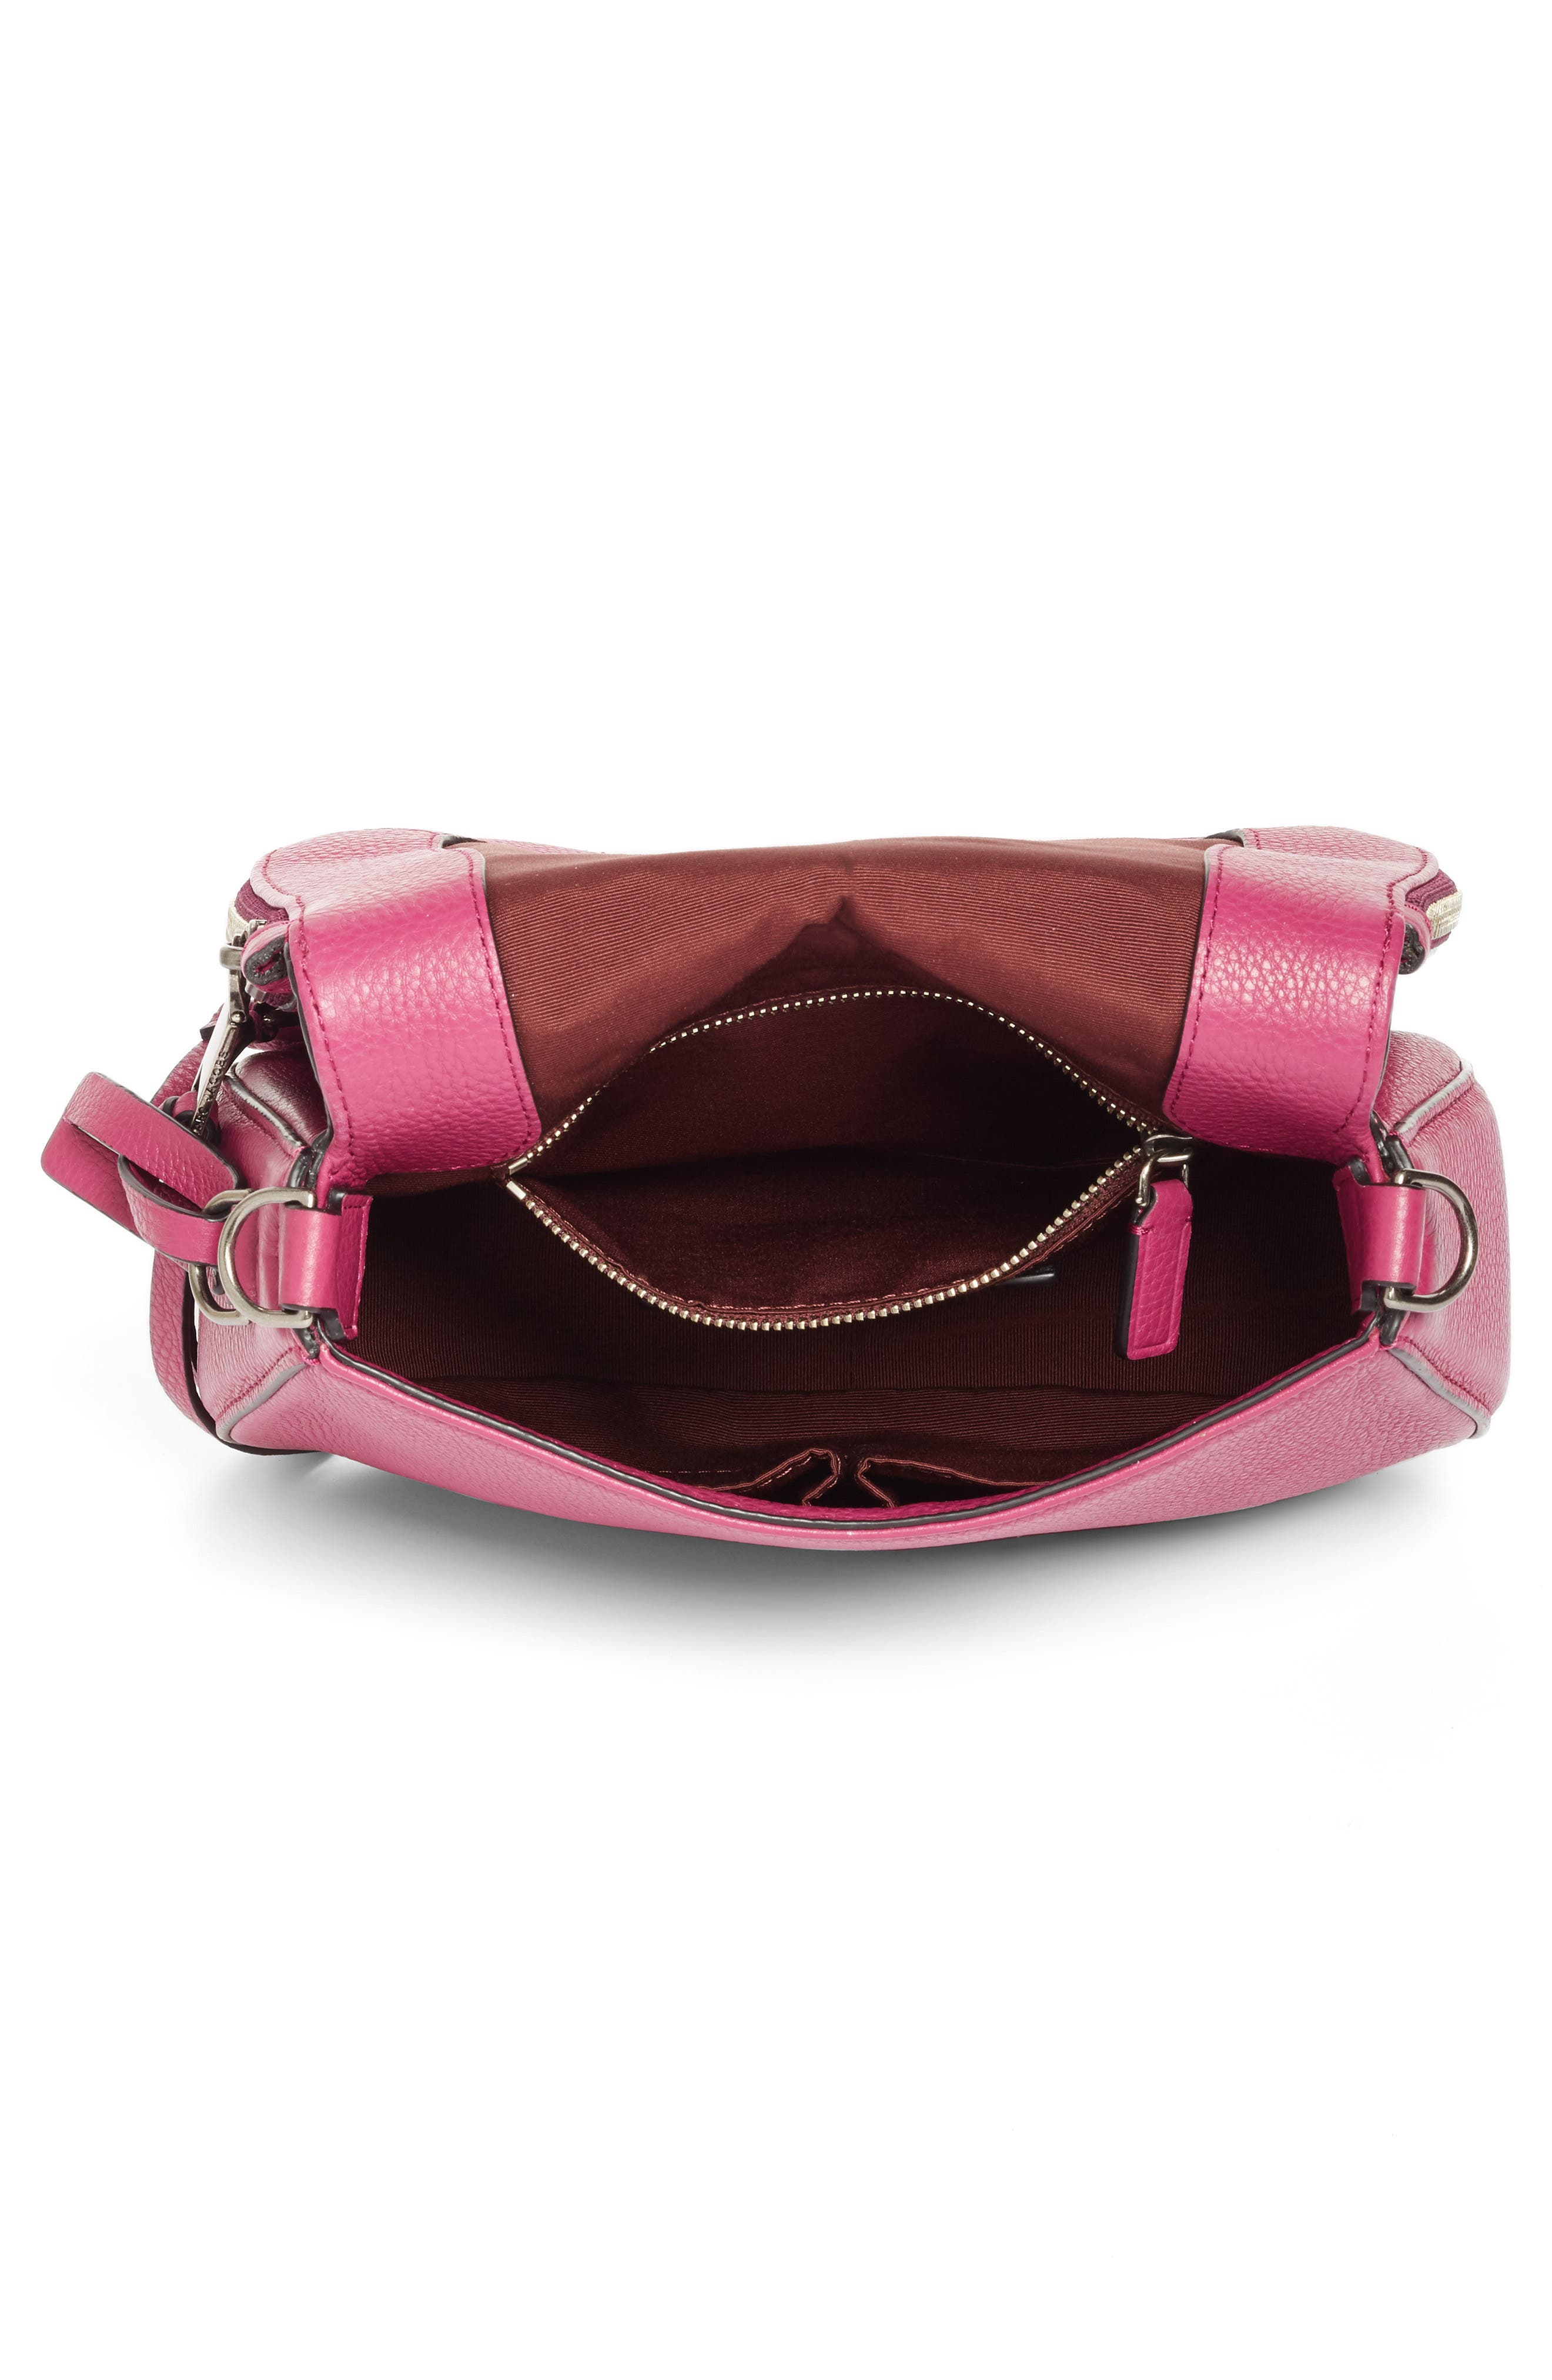 Small Recruit Nomad Pebbled Leather Crossbody Bag,                             Alternate thumbnail 67, color,